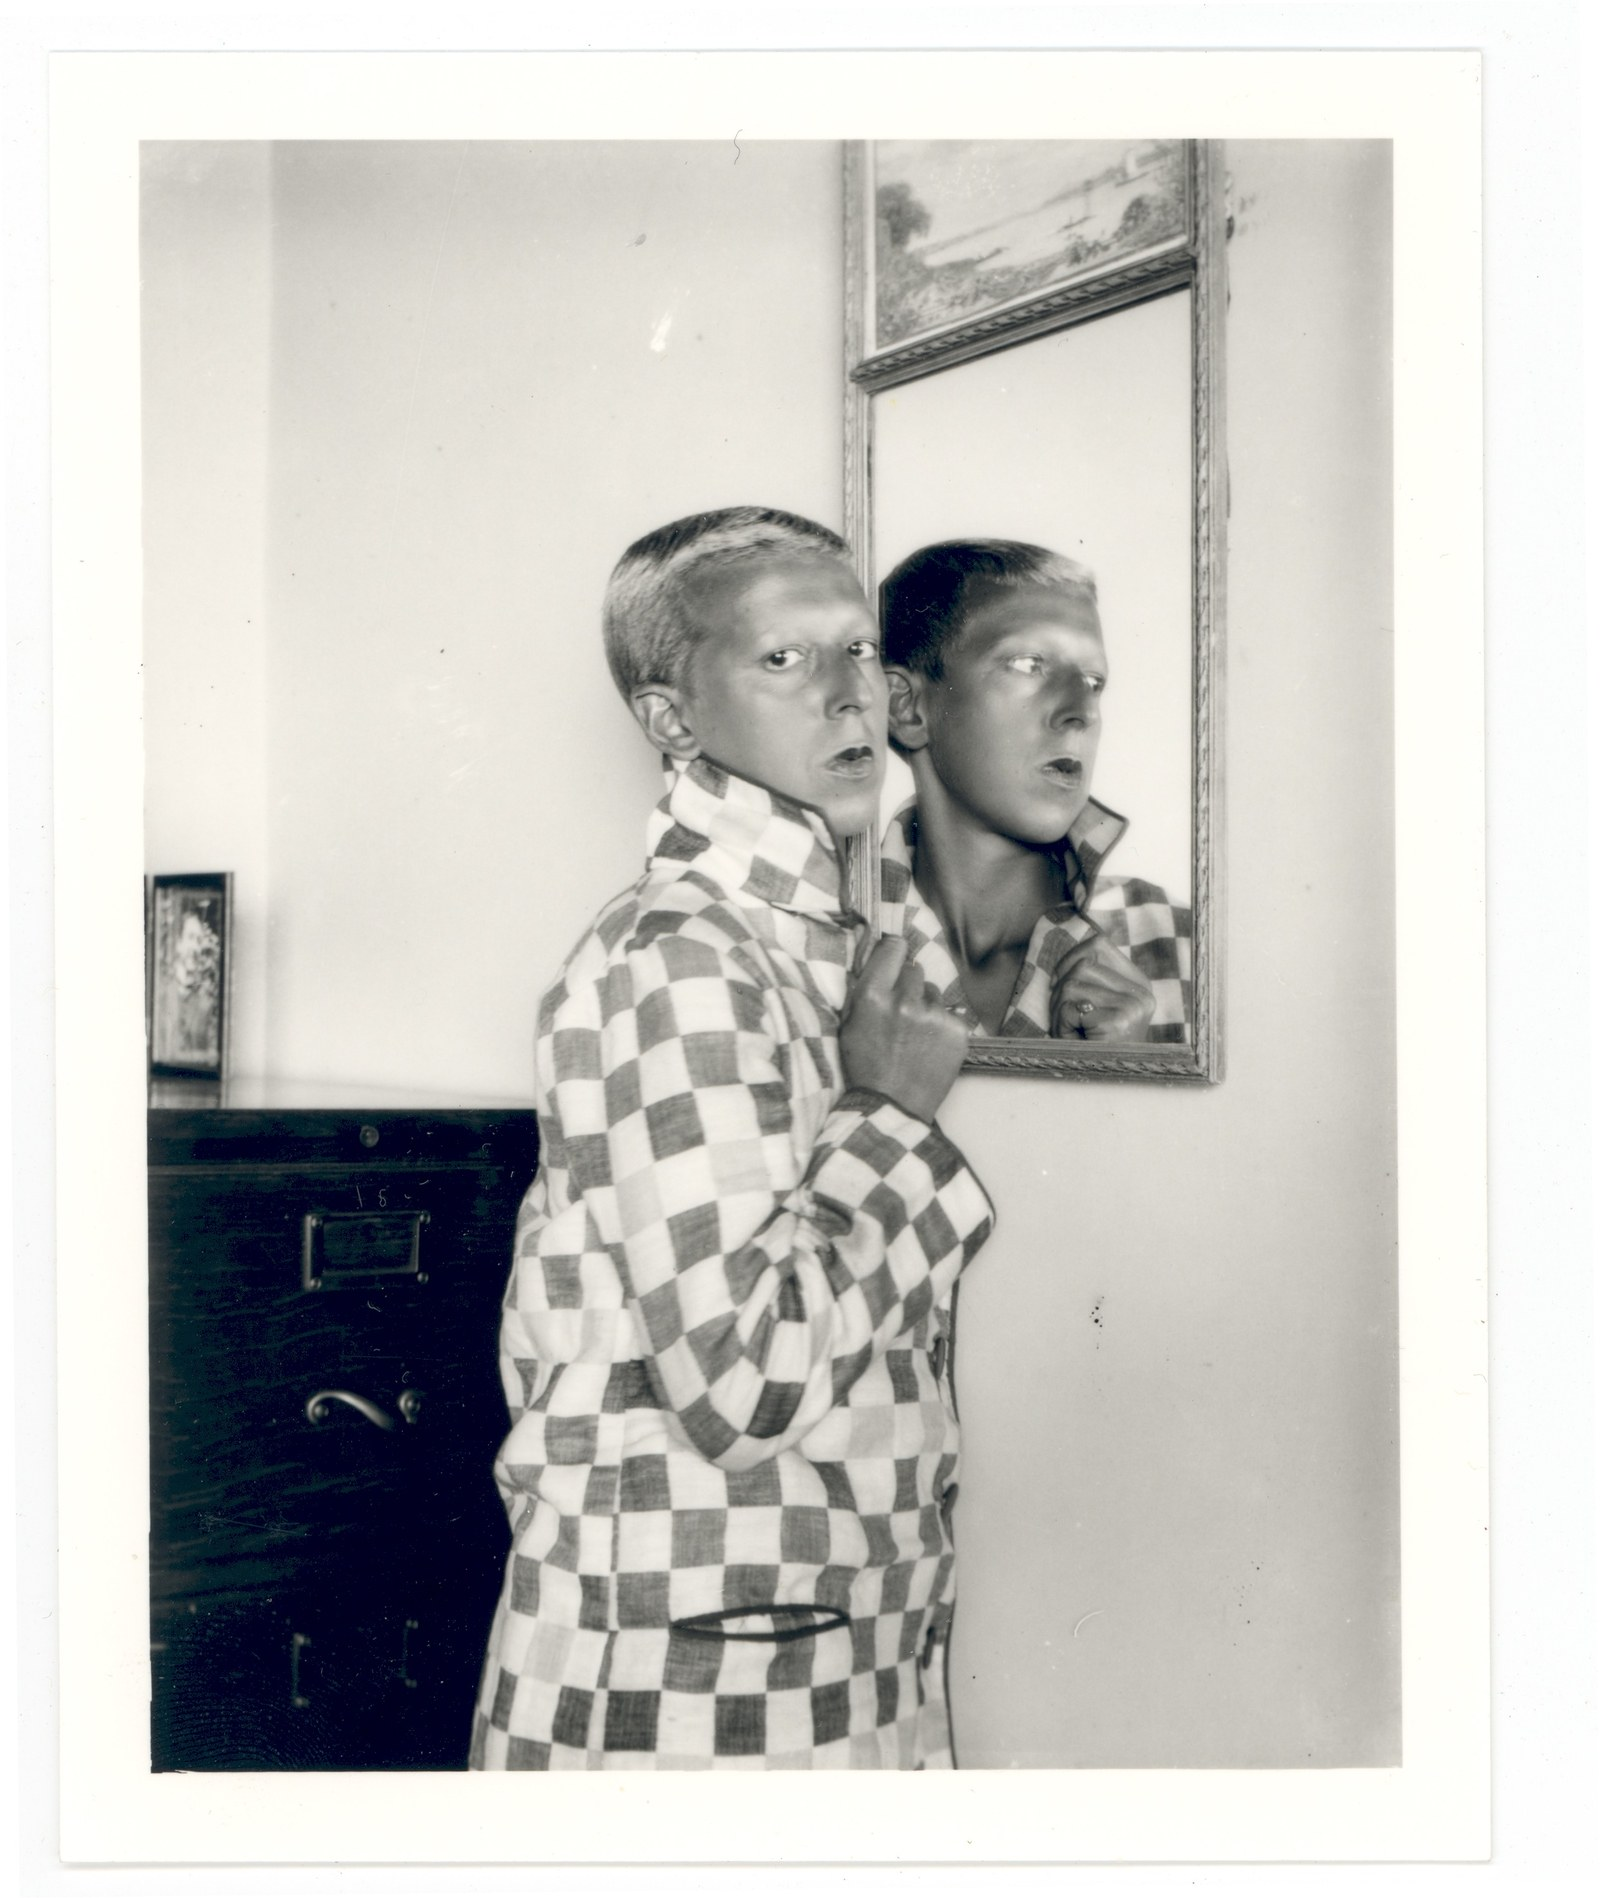 Claude Cahun, Self-Portrait with Mirror, 1928. Courtesy of the Jersey Heritage Collections.